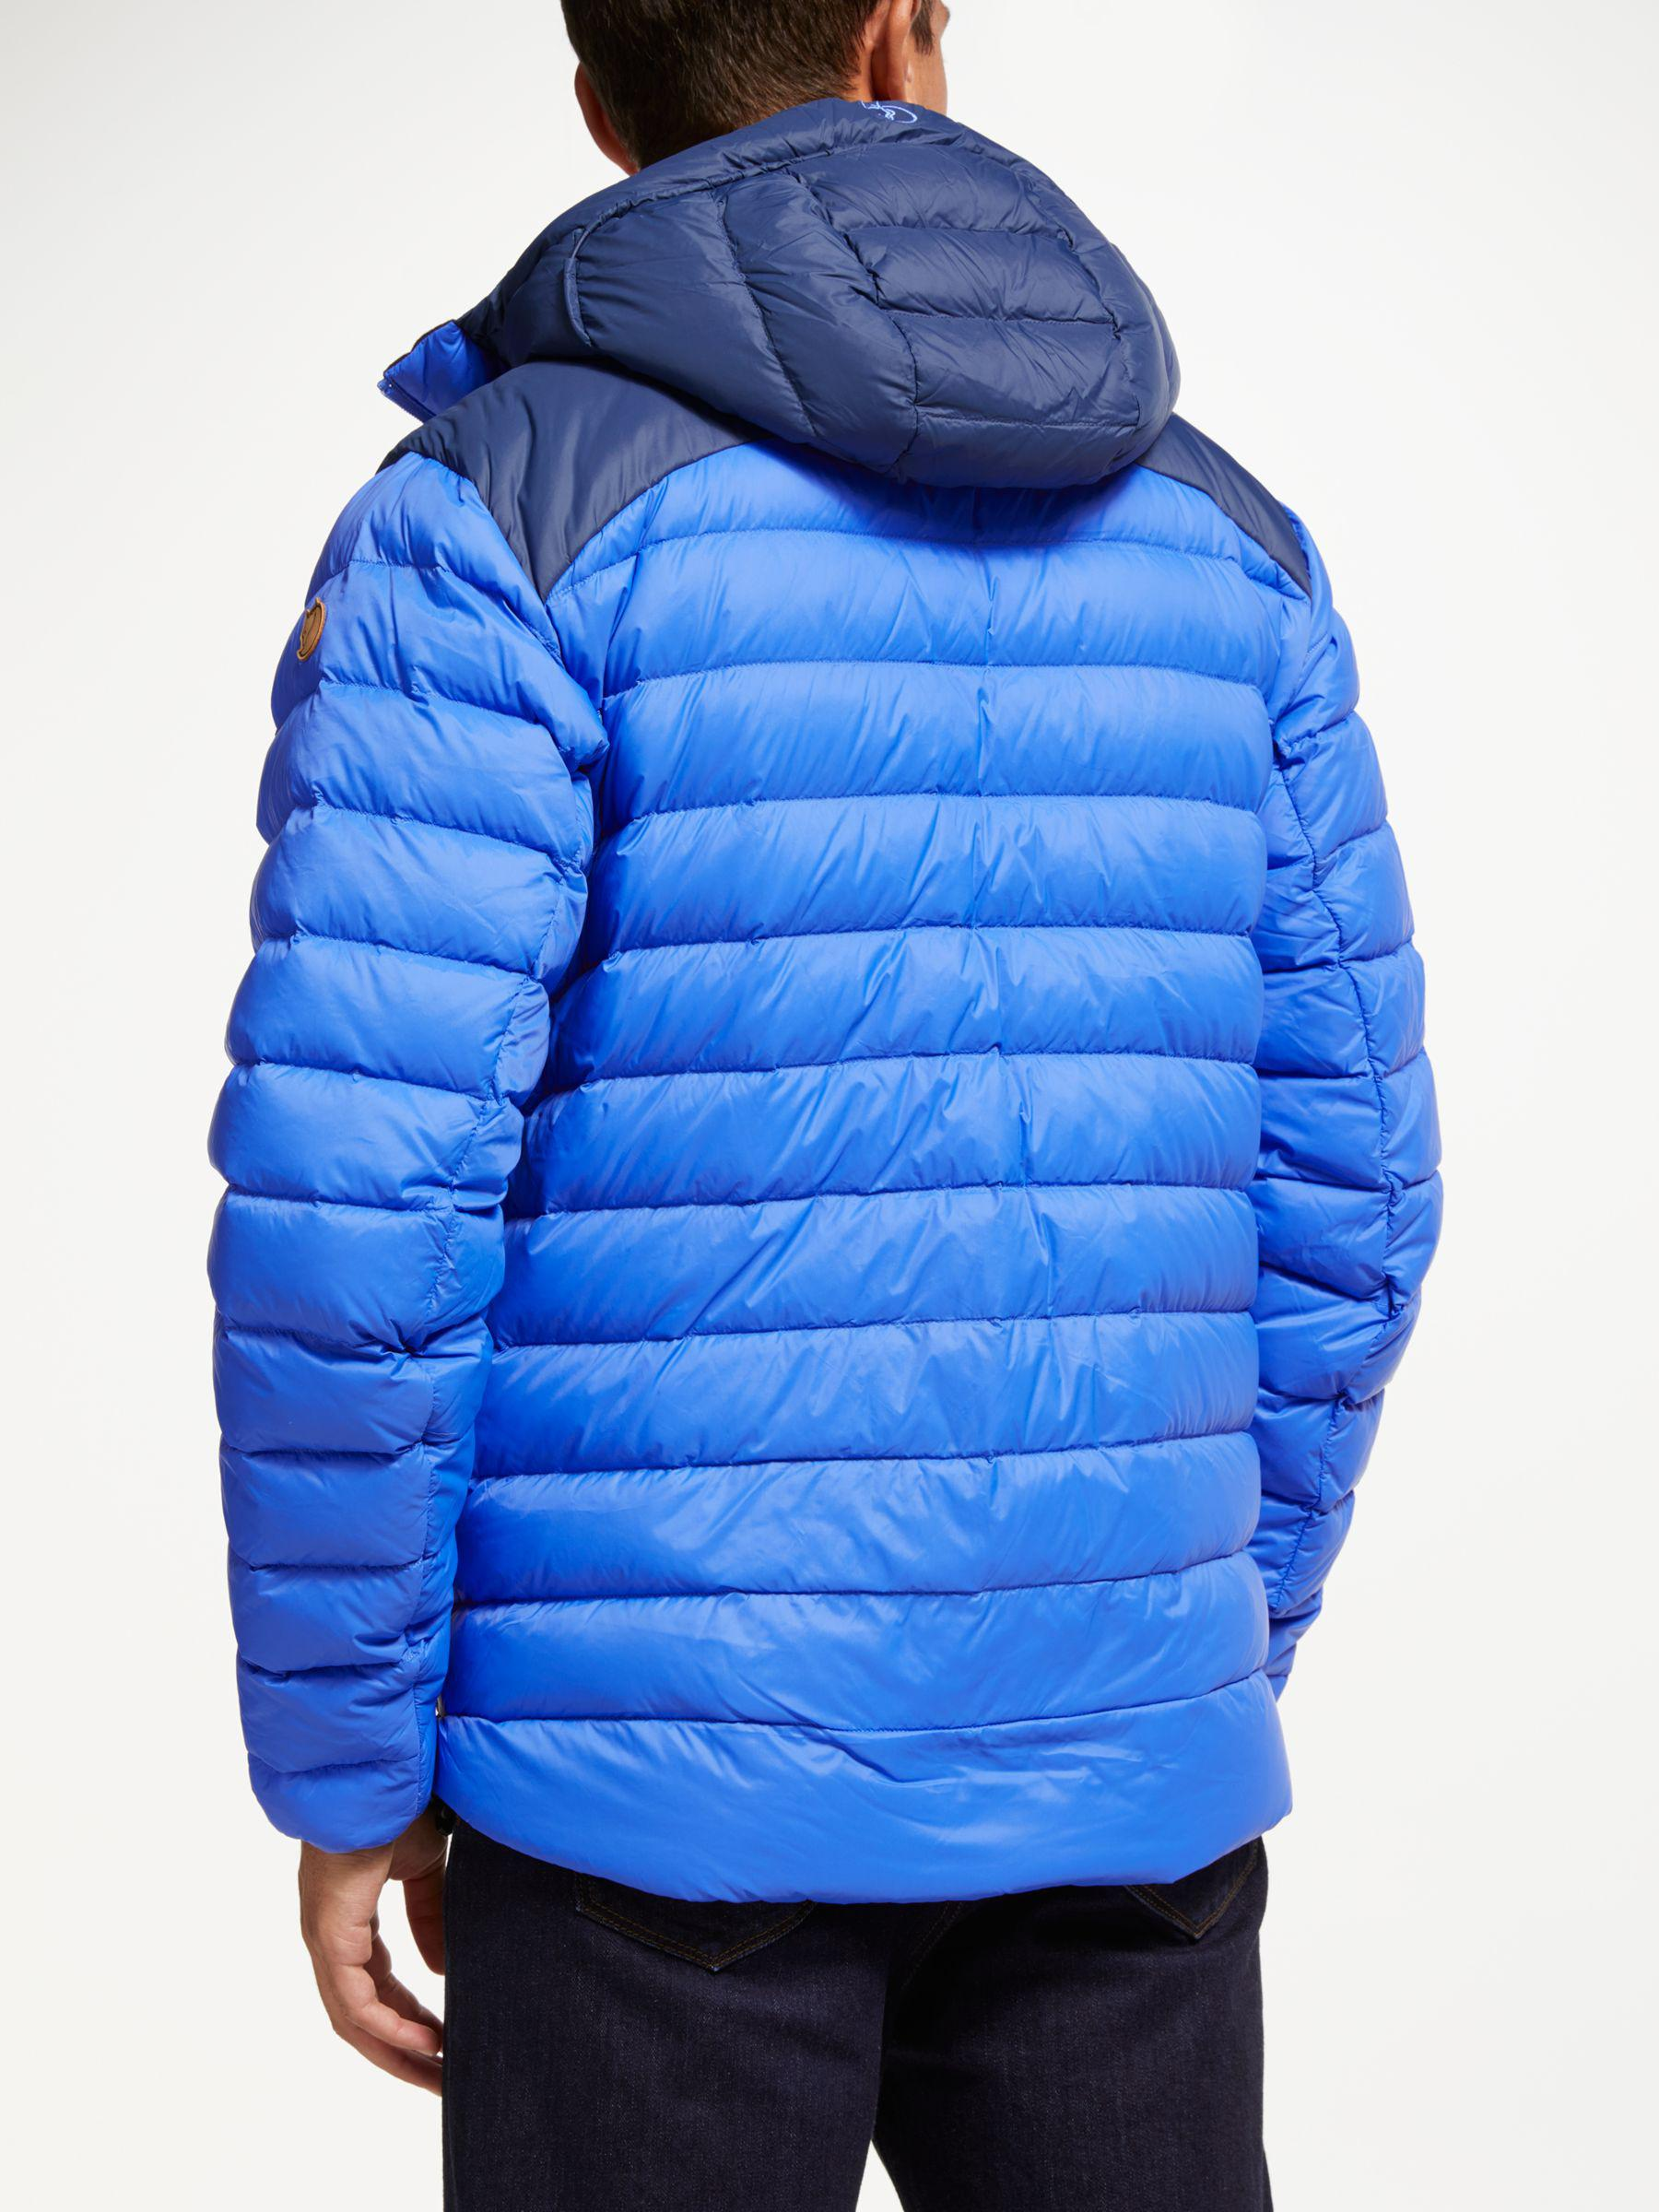 10705af74d Fjallraven - Blue Keb Touring Down Puffer Jacket for Men - Lyst. View  fullscreen